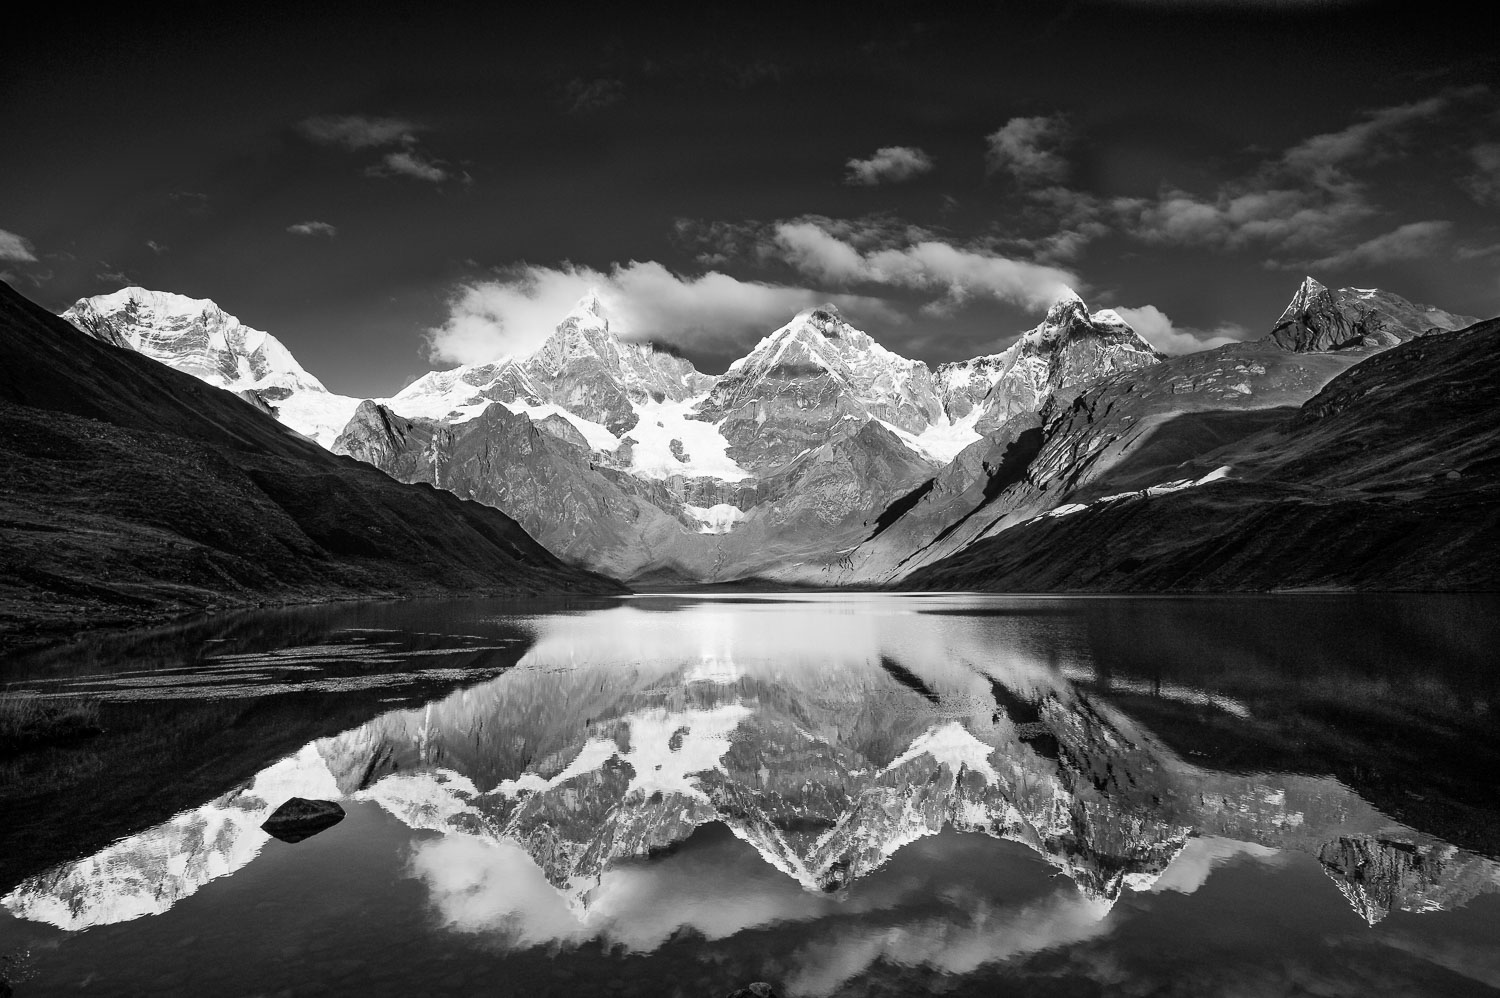 """Reflections and Stillness"",  Black and White Photograph B & W o"